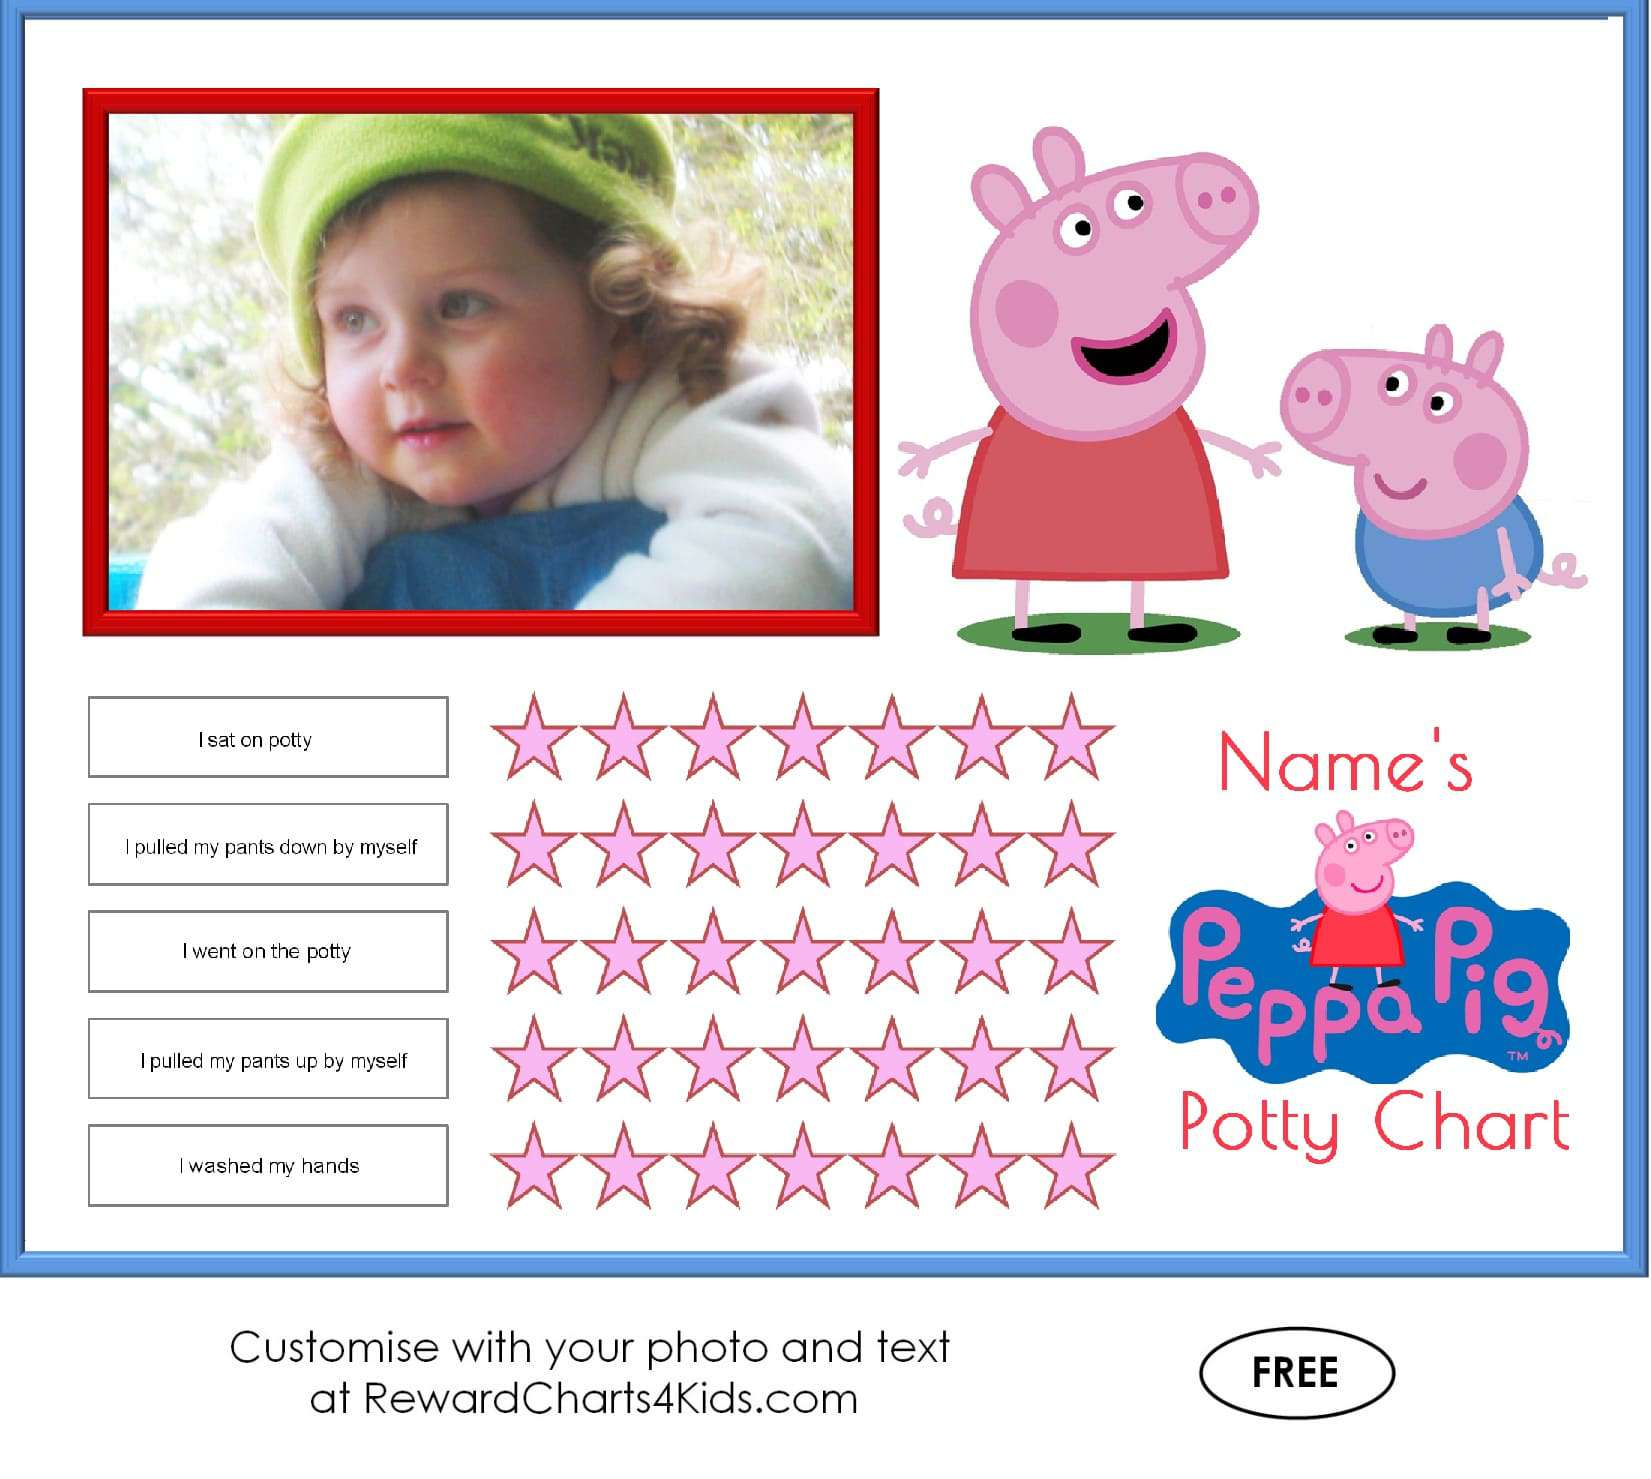 Free Peppa Pig Potty Training Charts | Customize with Your Photo